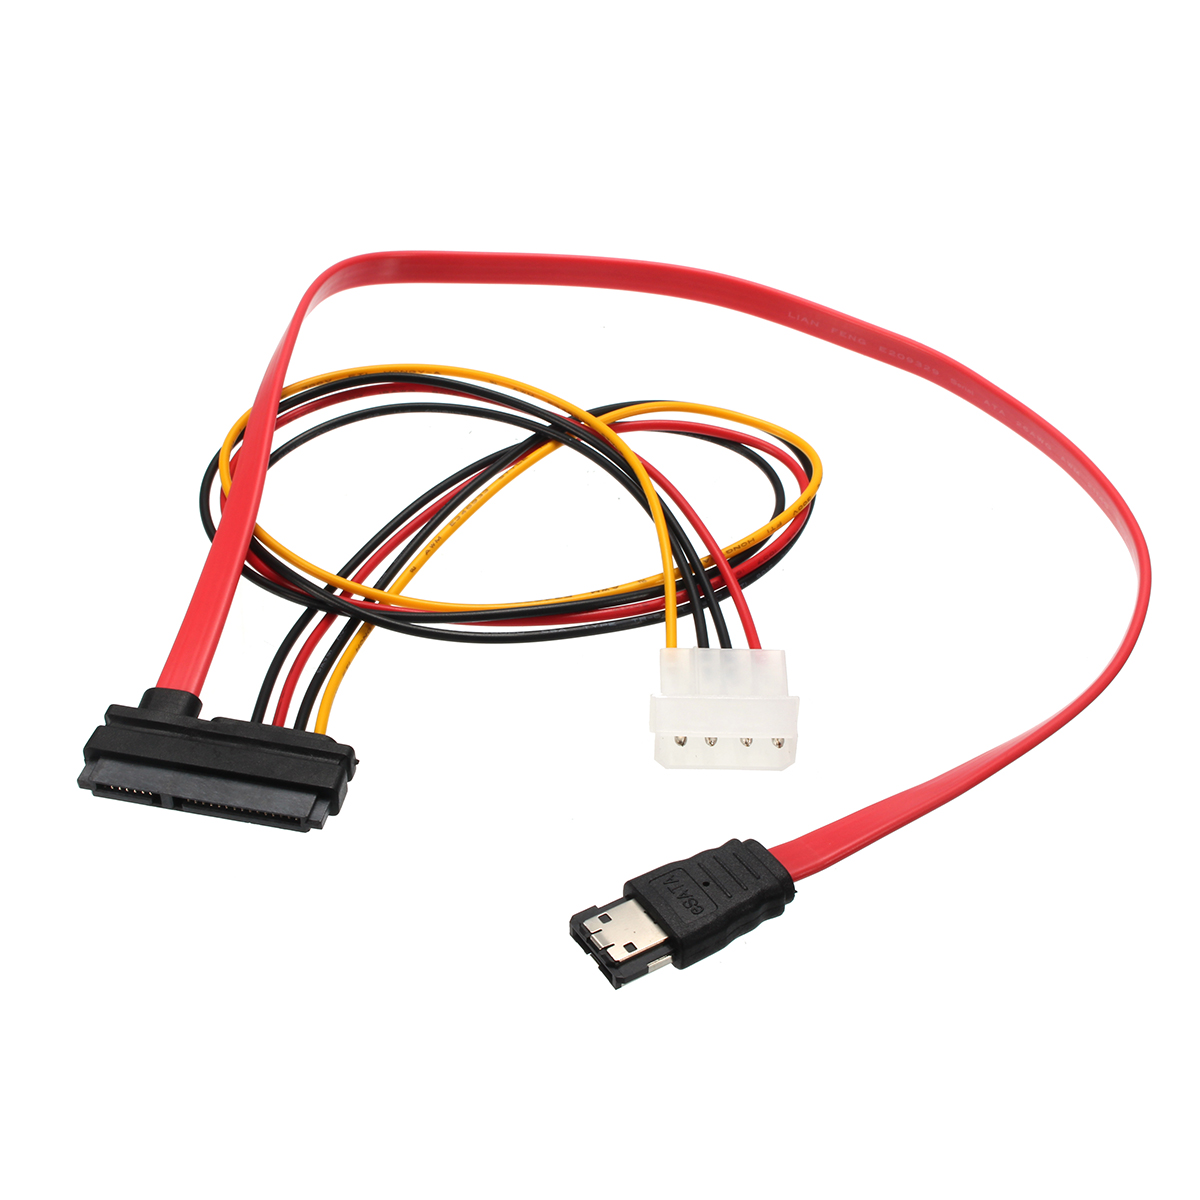 7 15 22pin Sata Interface To Esata Port Large 4pin Power 50cm Micro Data Cable Conversion